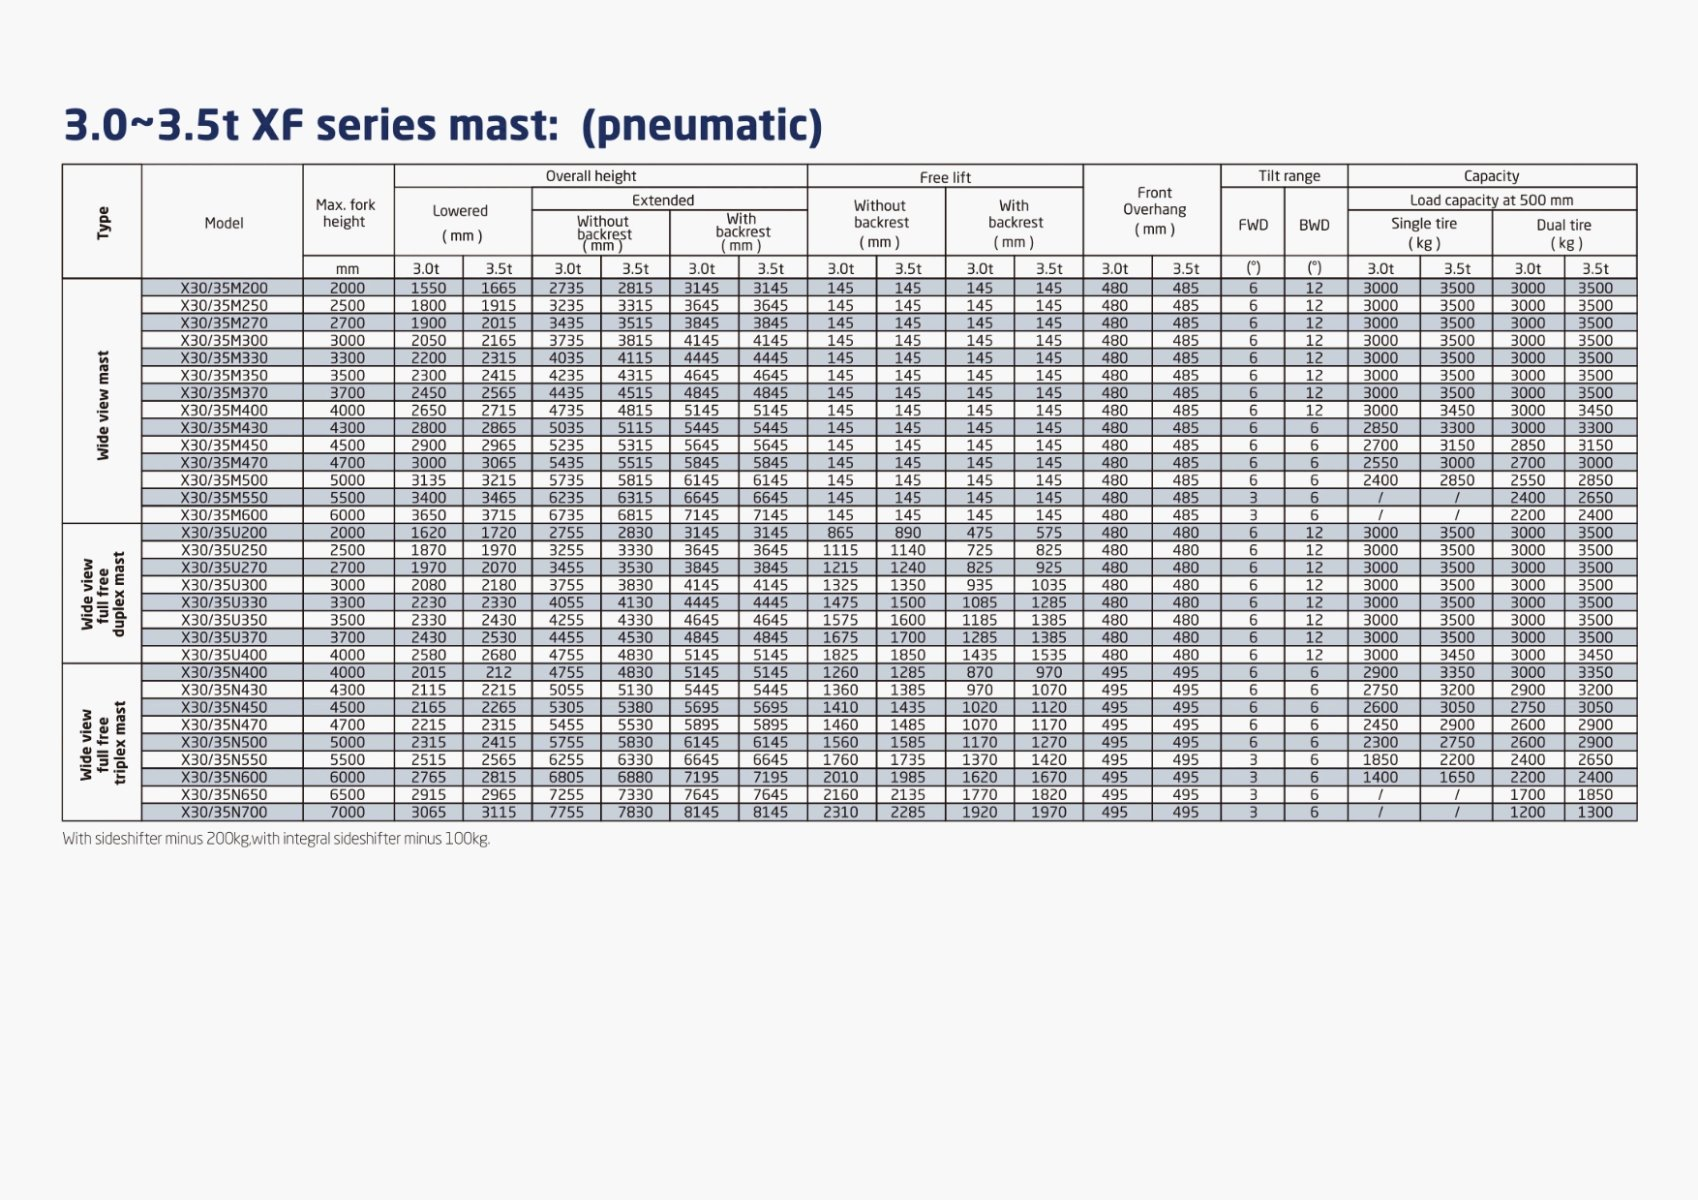 3.5T GAS FORK CONTAINER MAST SPECIFICATIONS